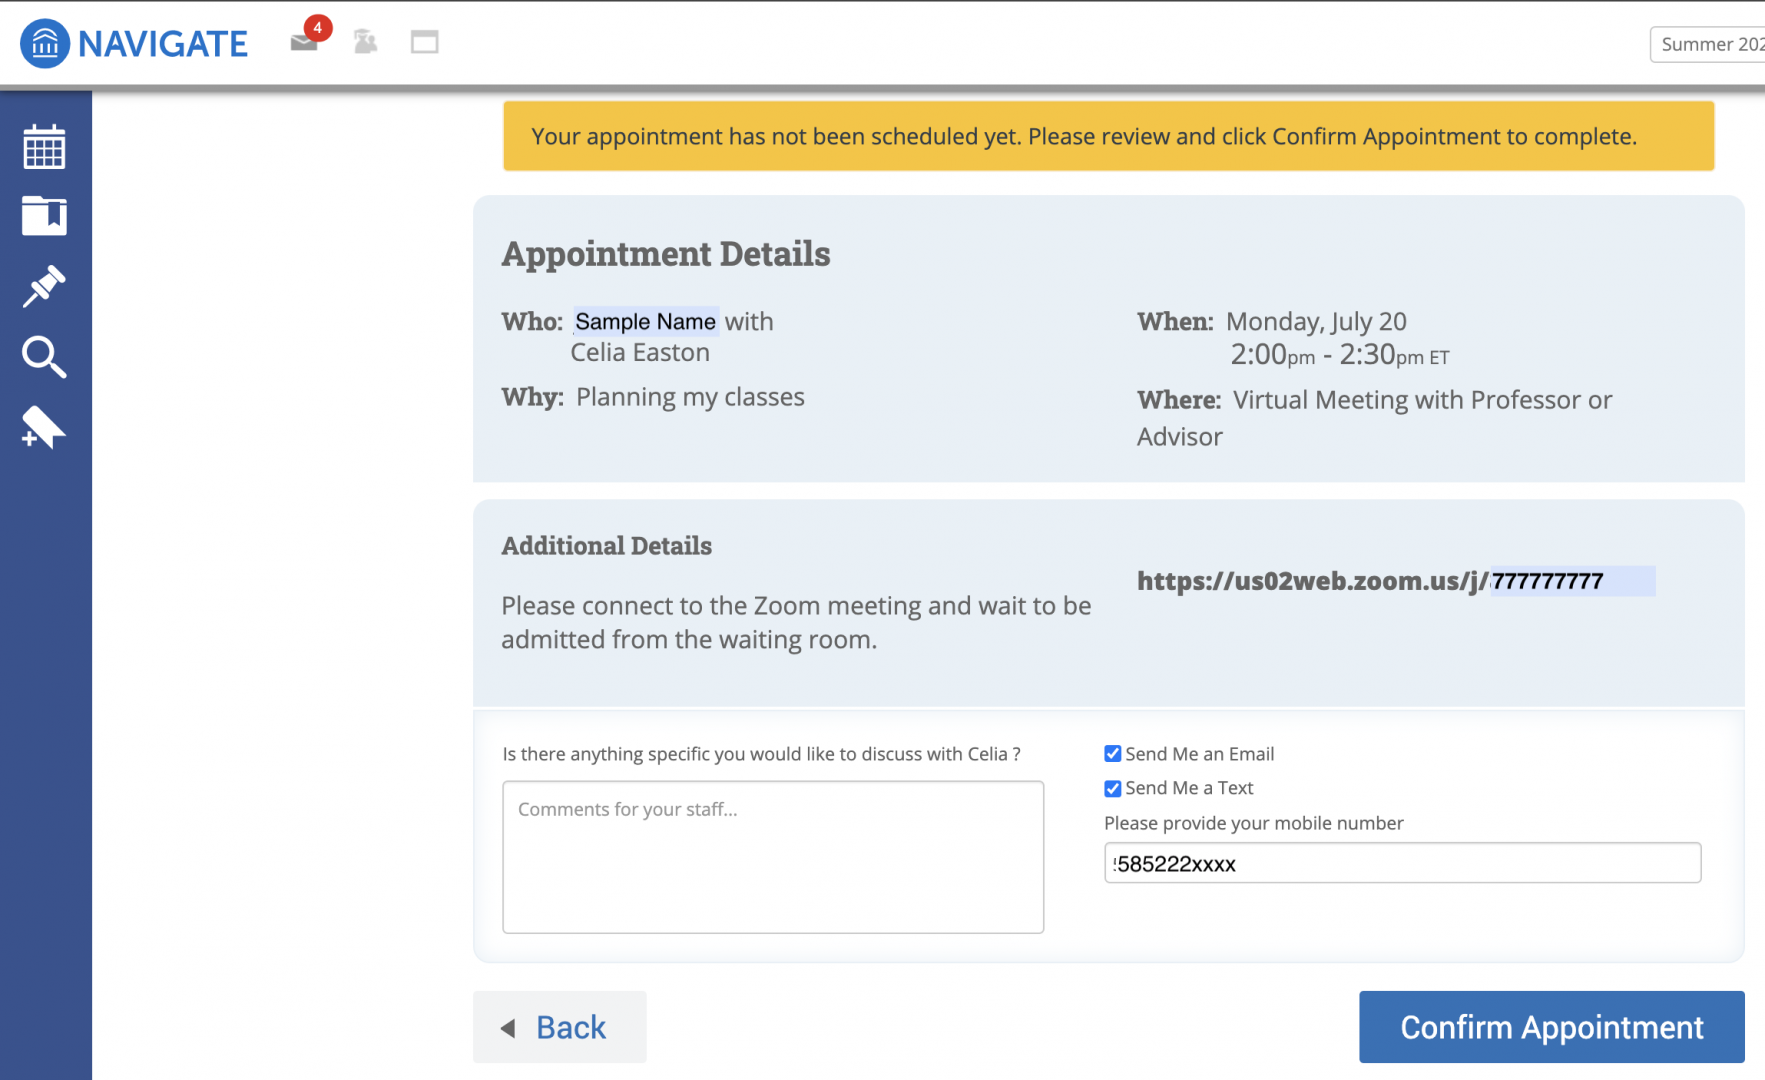 Image of appointment confirmation for Navigate appointment with DAPA advisors.